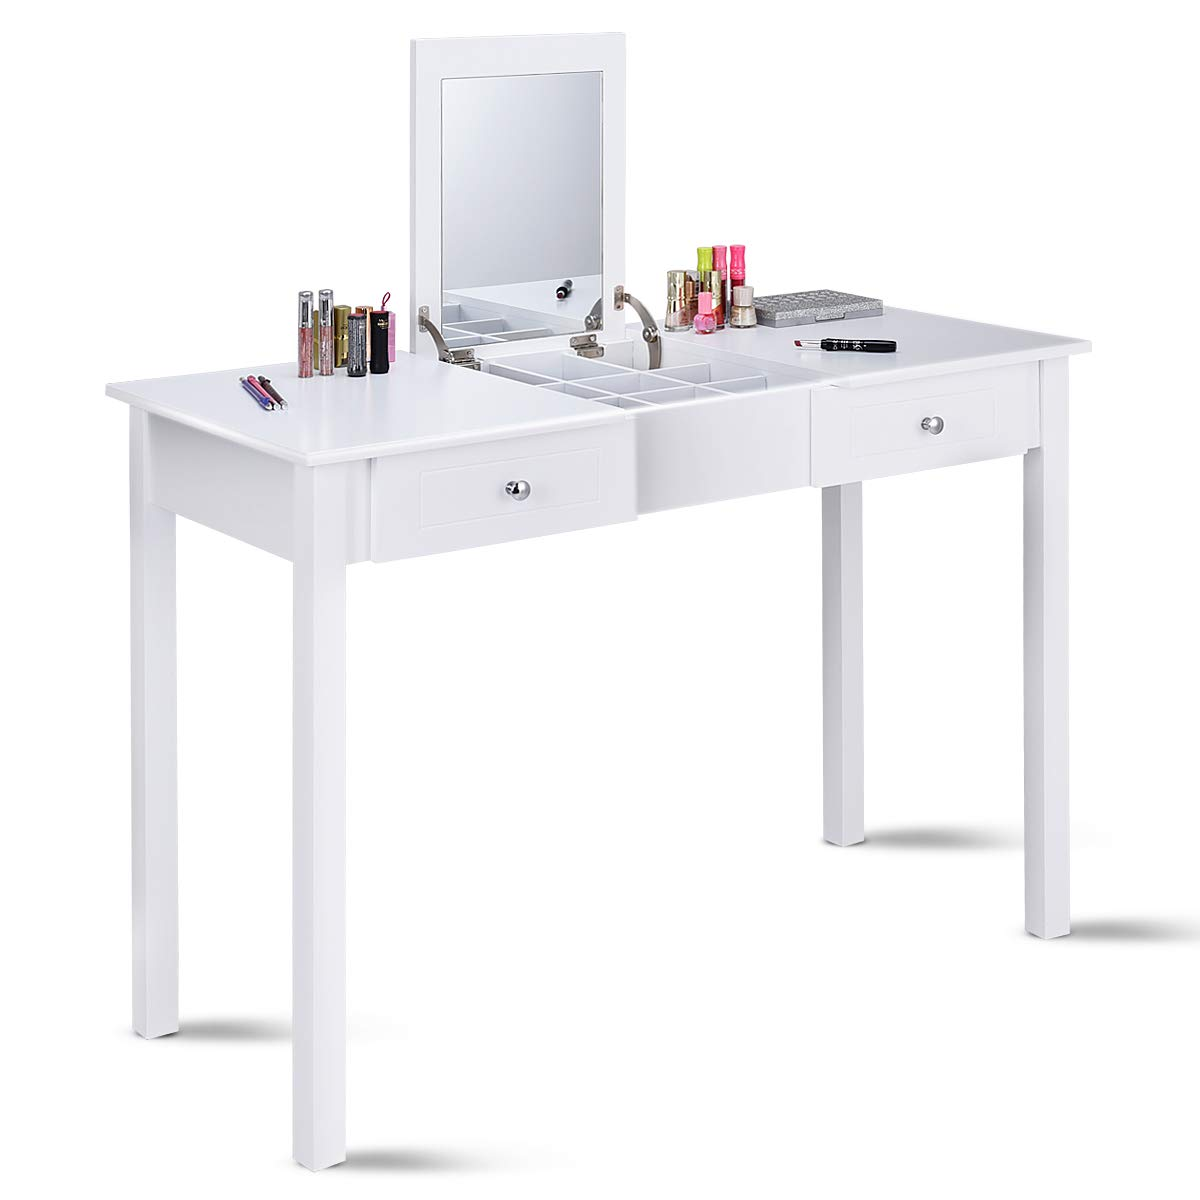 Giantex Vanity Table with Flip Top Mirror with 2 Drawers 1 Removable Organizer Dressing Table Vanity Table, White by Giantex (Image #1)